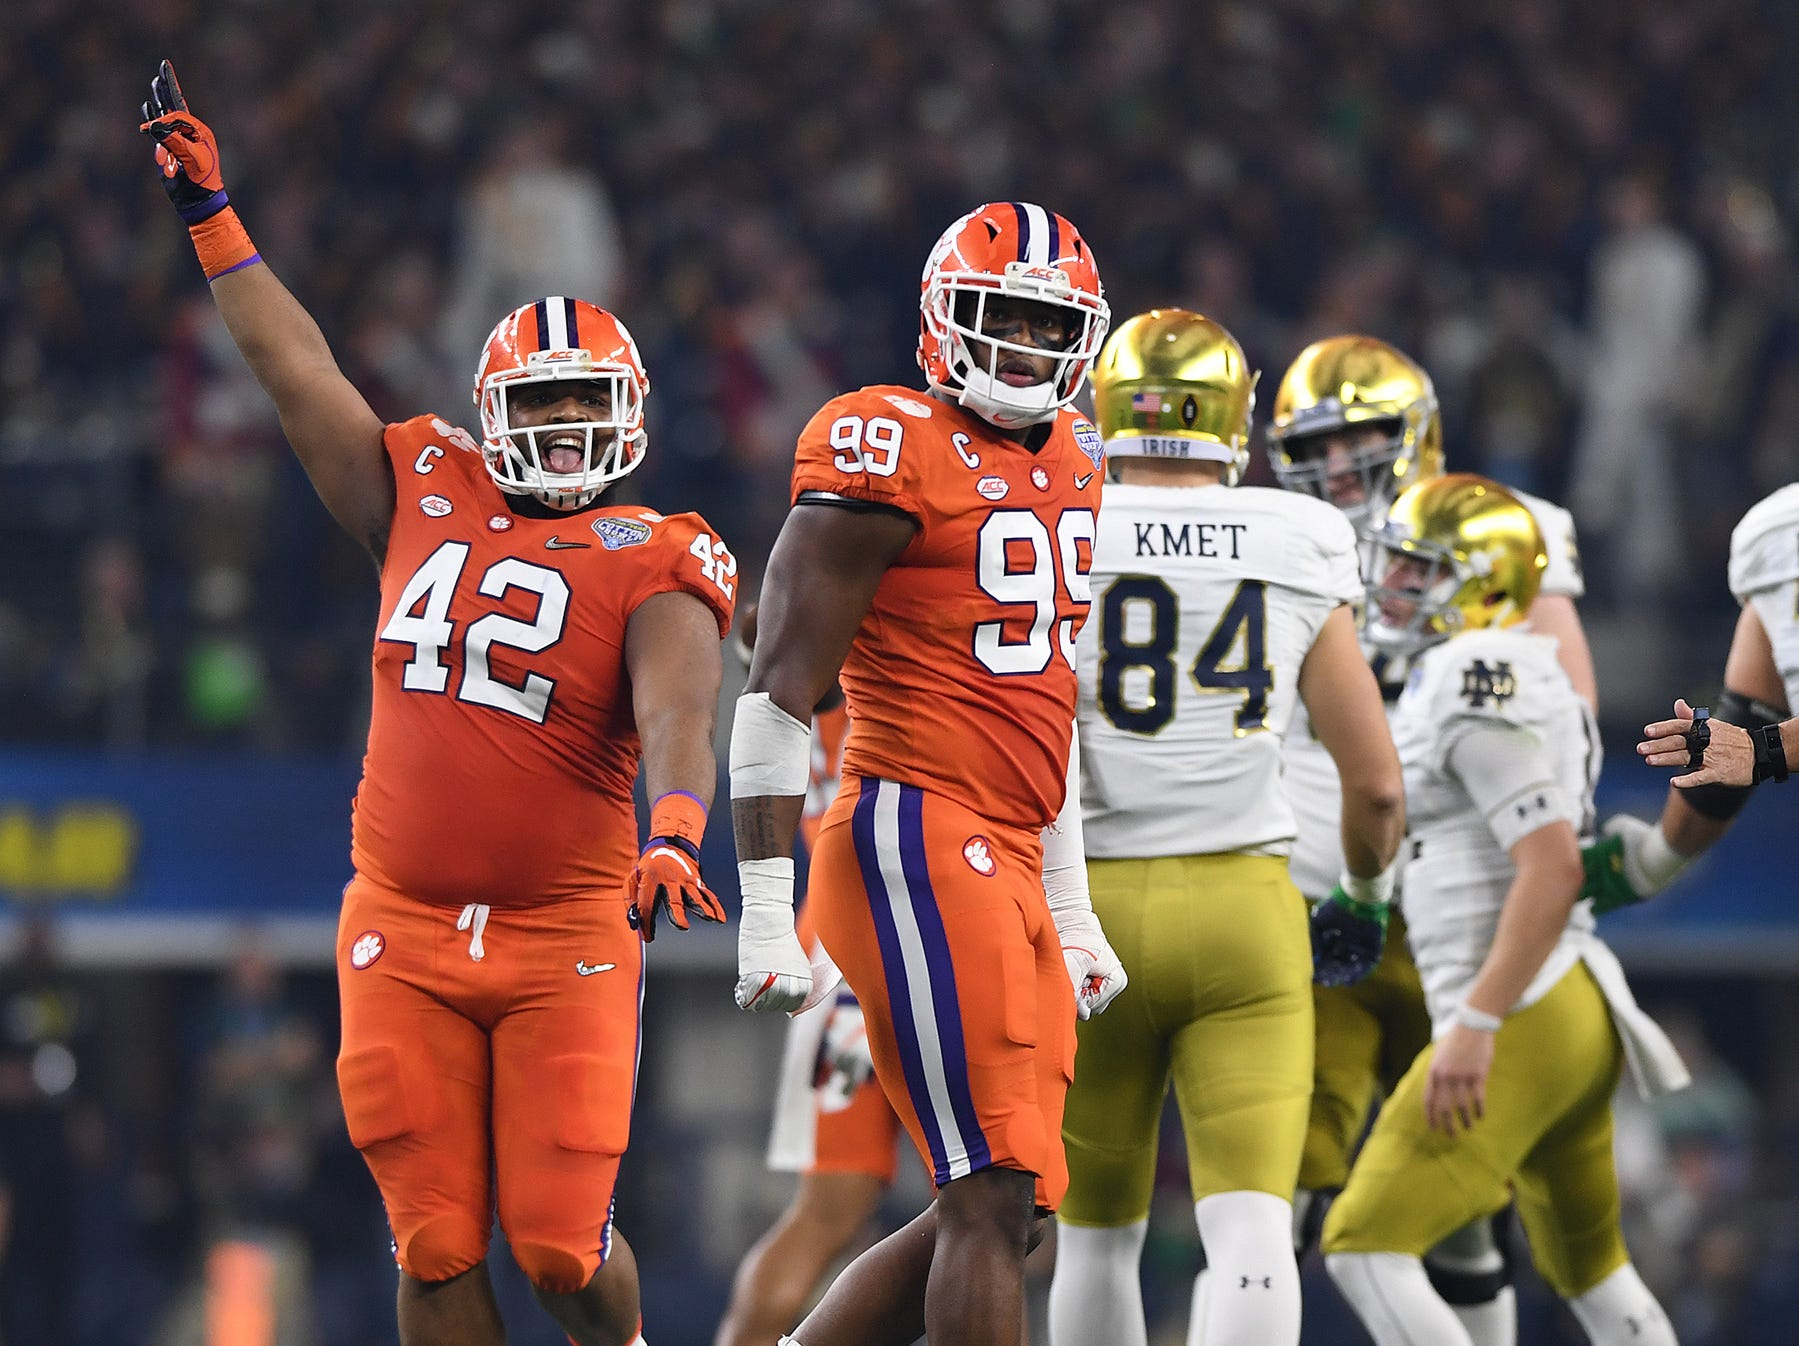 Clemson defensive lineman Christian Wilkins (42) celebrates after a defensive stop by defensive lineman Clelin Ferrell (99) during the 1st quarter of the Goodyear Cotton Bowl at AT&T stadium in Arlington, TX Saturday, December 29, 2018.